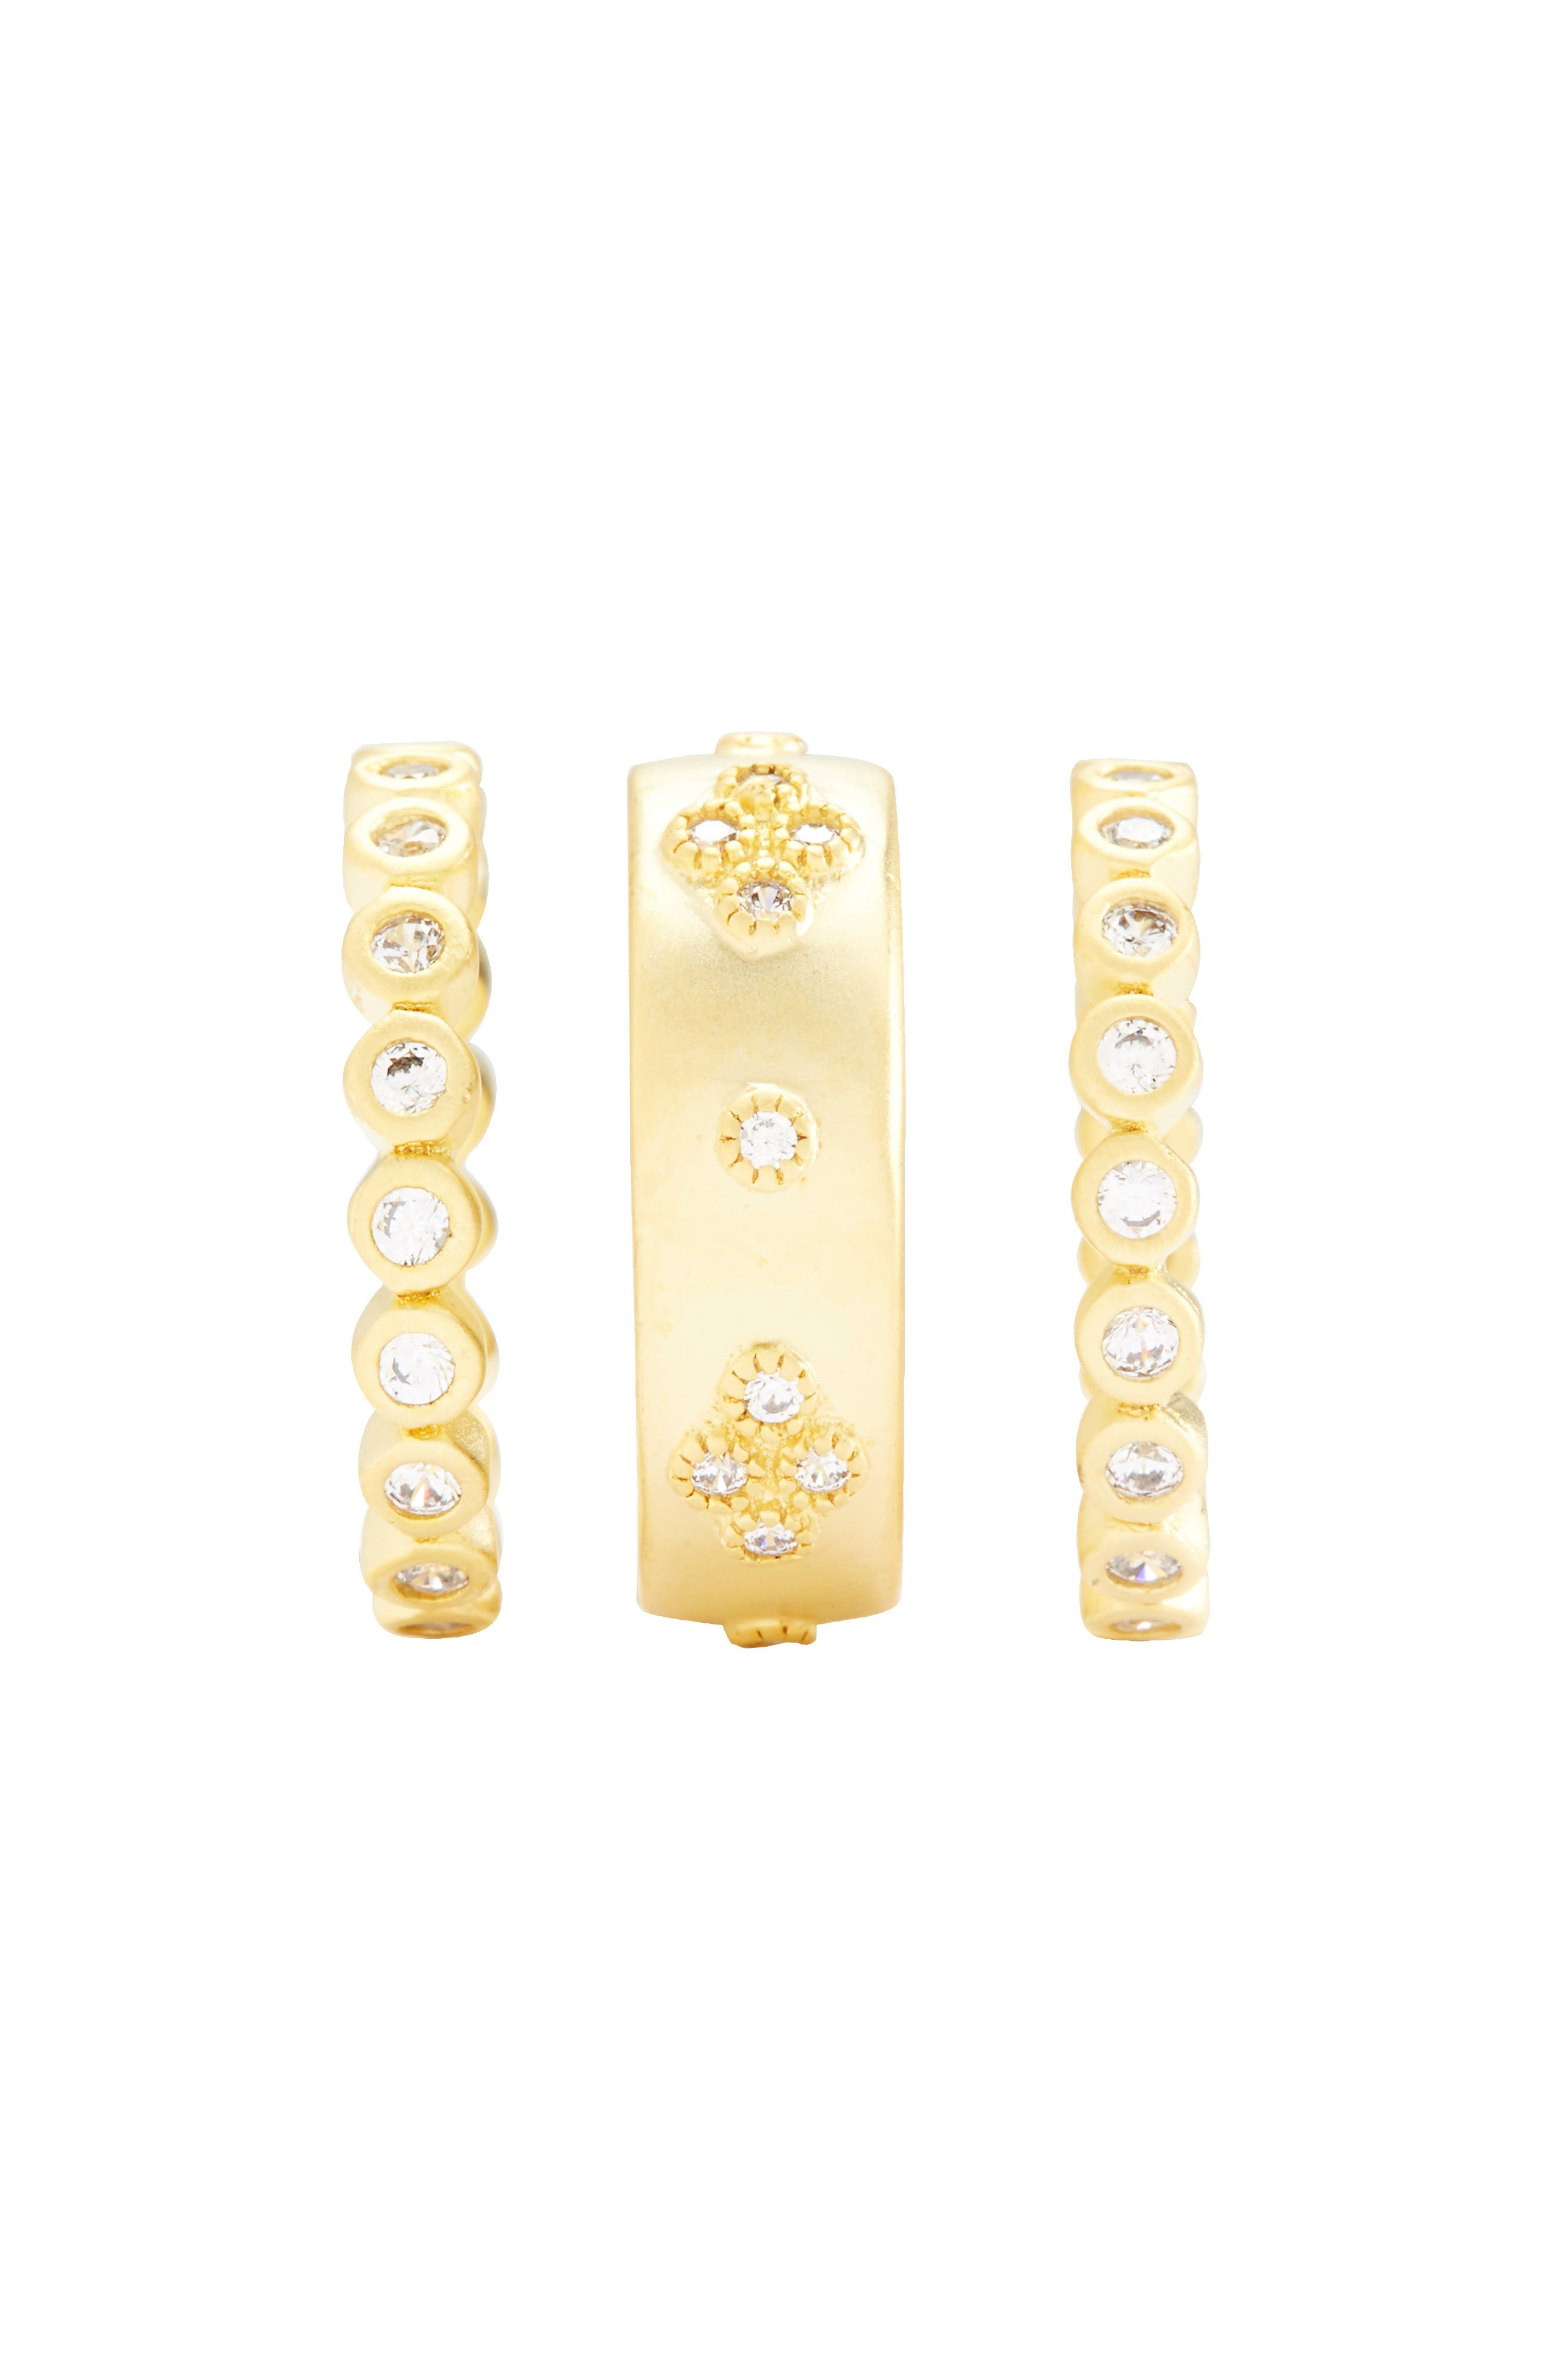 Audrey Set of 3 Cubic Zirconia Stacking Rings,                             Alternate thumbnail 3, color,                             Gold/ Clear